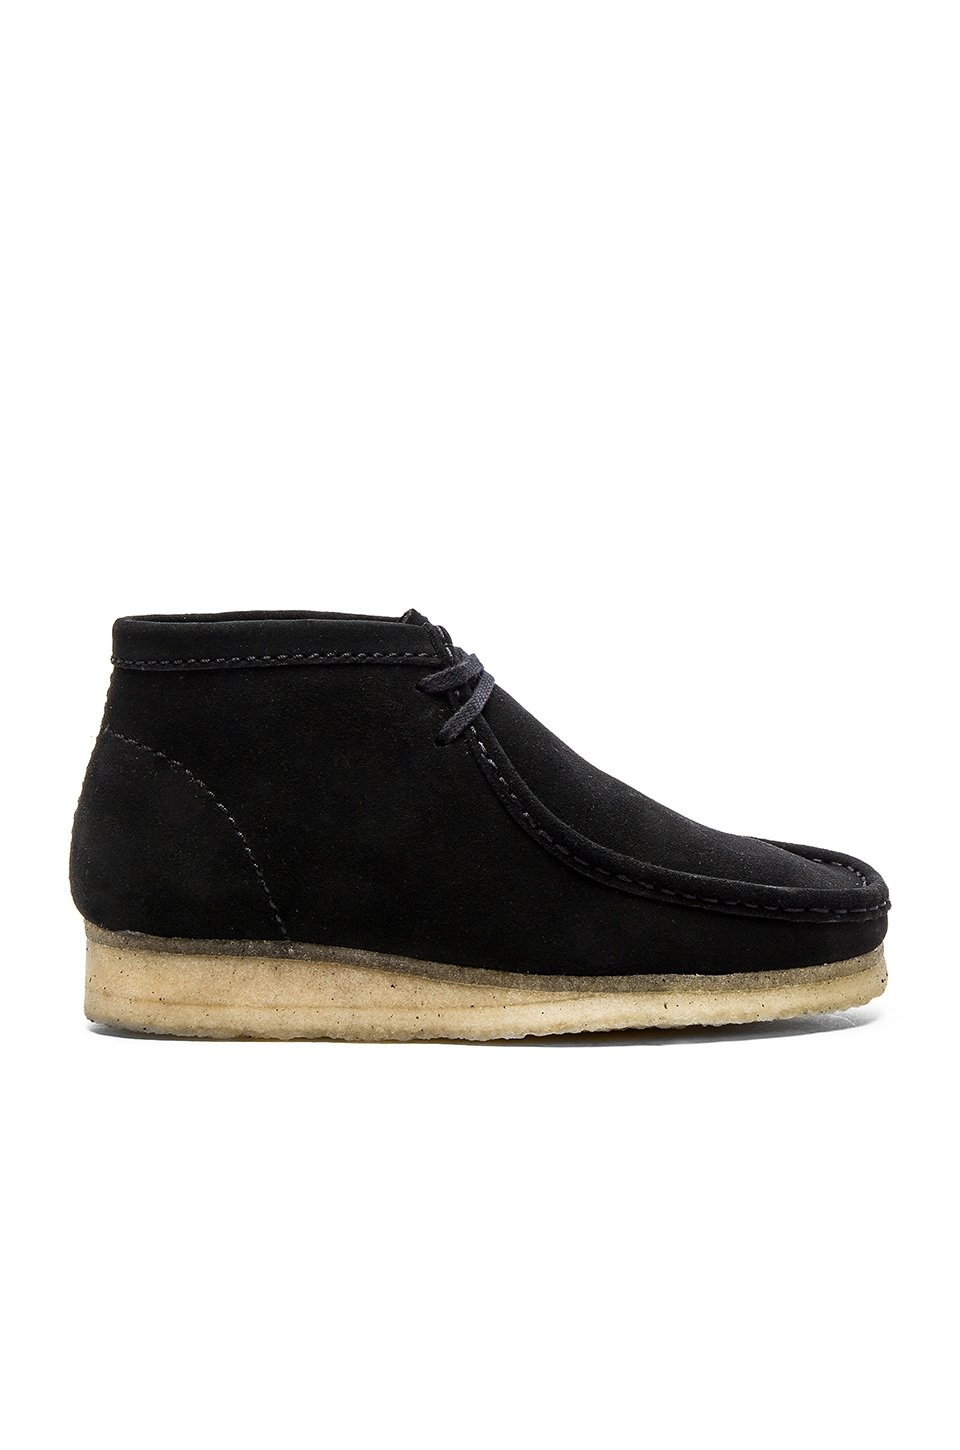 In Boot Wallabee Revolve Natural Suede Black Clarks Originals SatnxFaZ